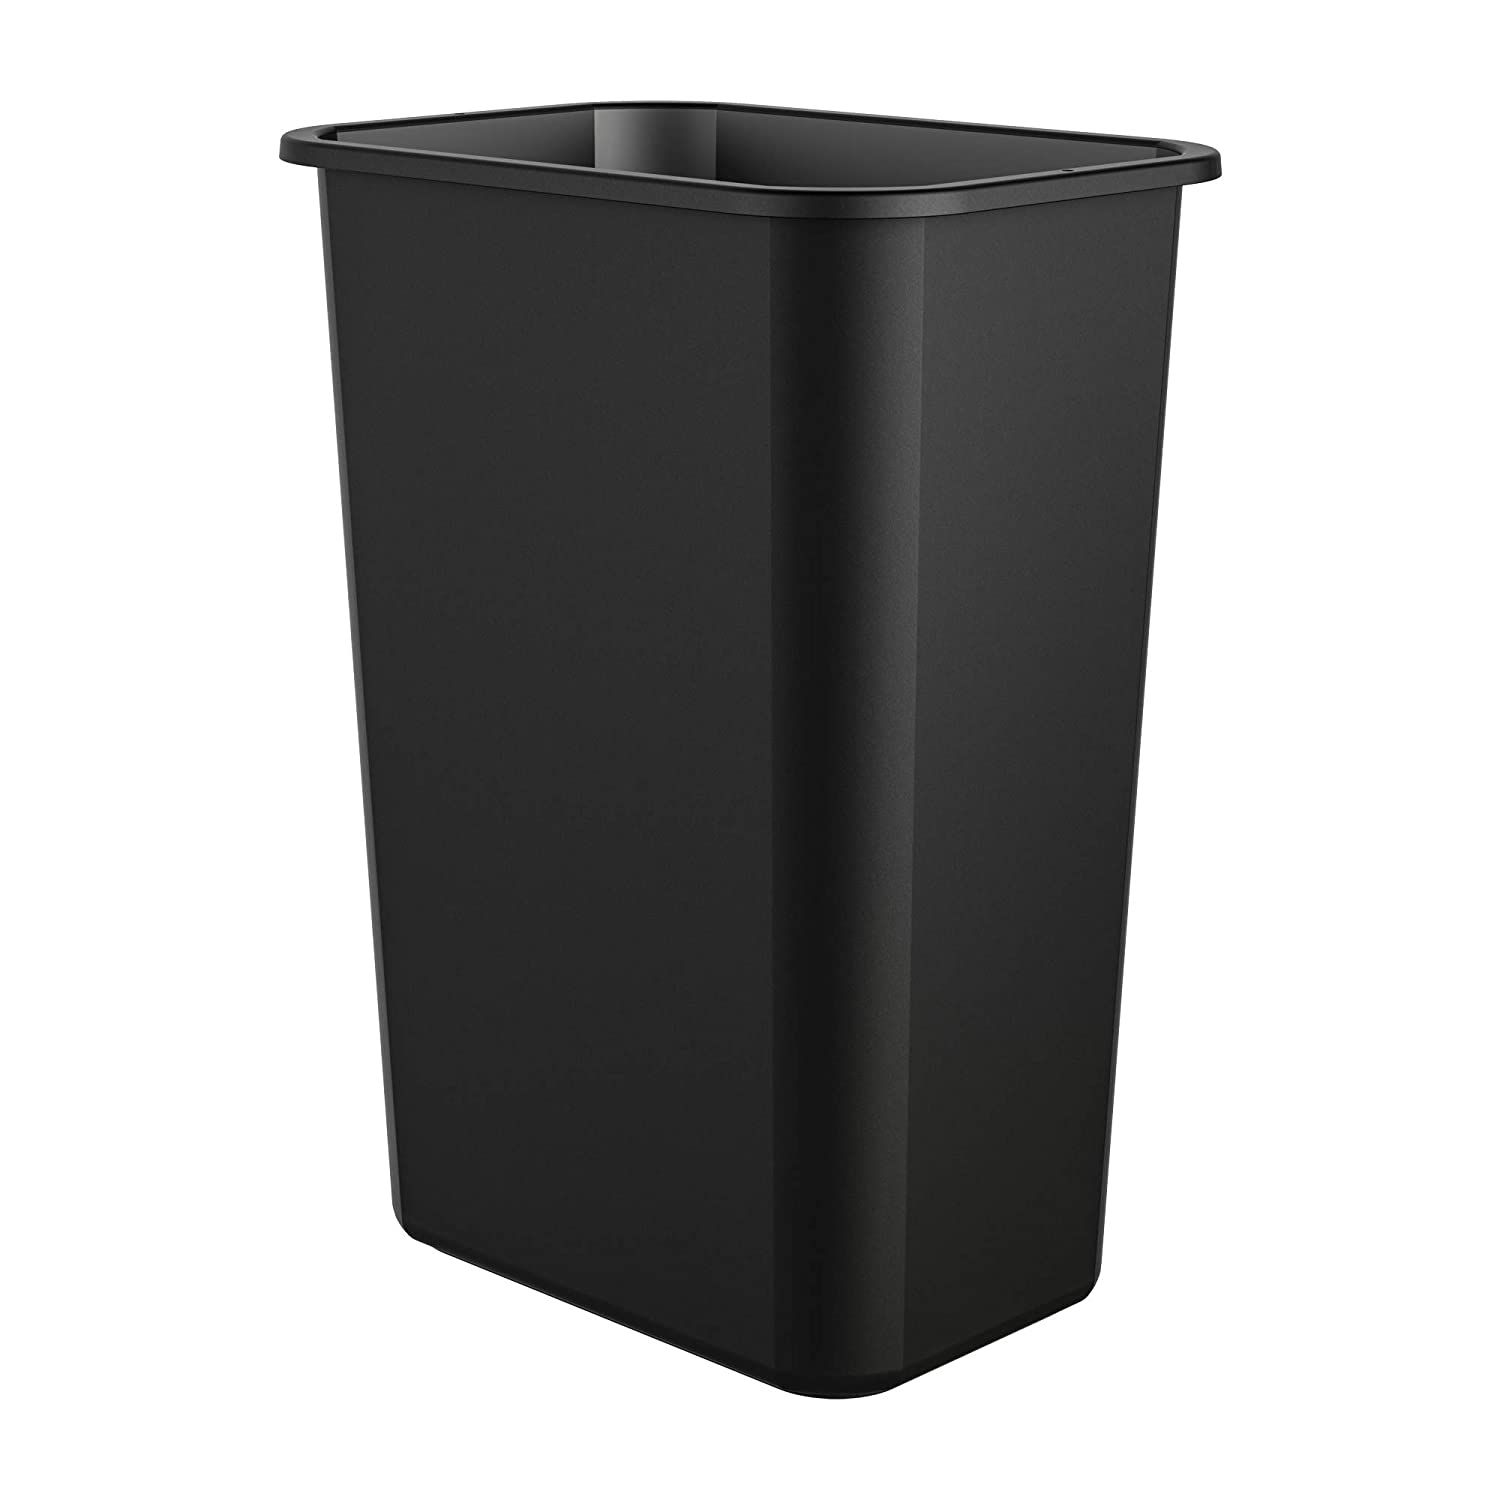 AmazonCommercial 10 Gallon Commercial Waste Basket